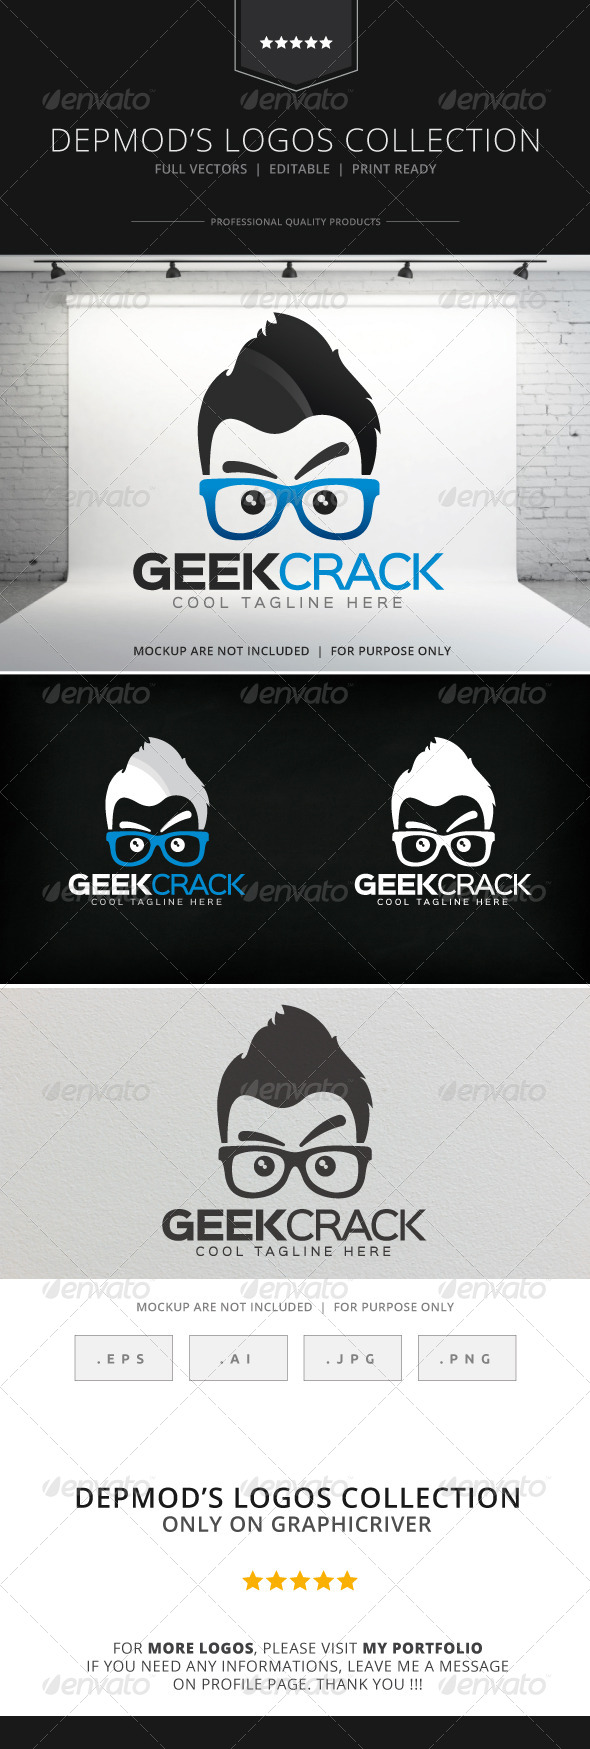 GraphicRiver Geek Crack Logo 8516141